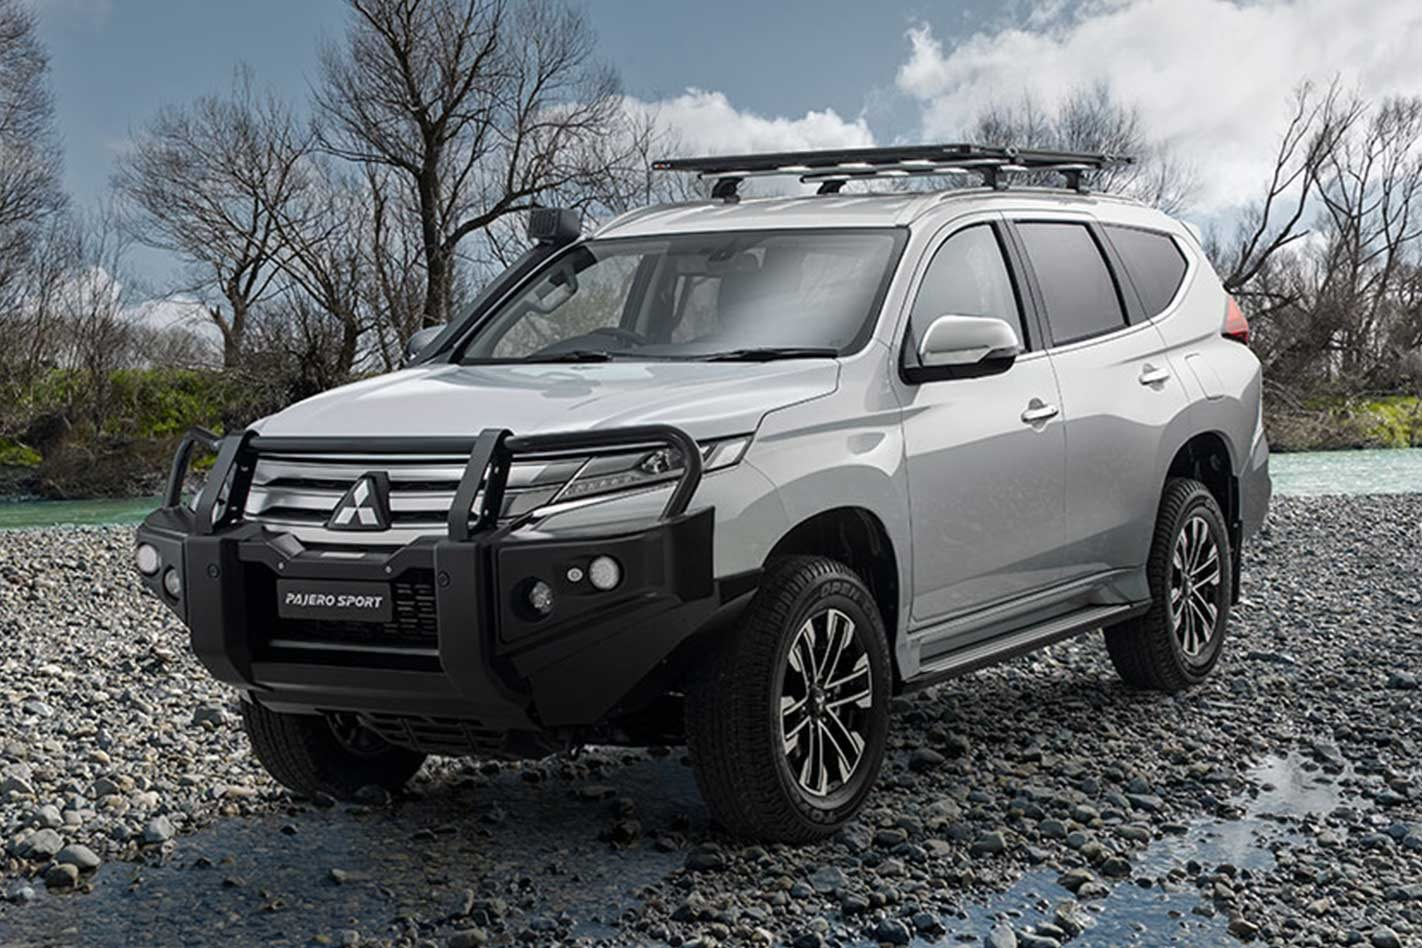 Mitsubishi Pajero Sport Off Road Accessories